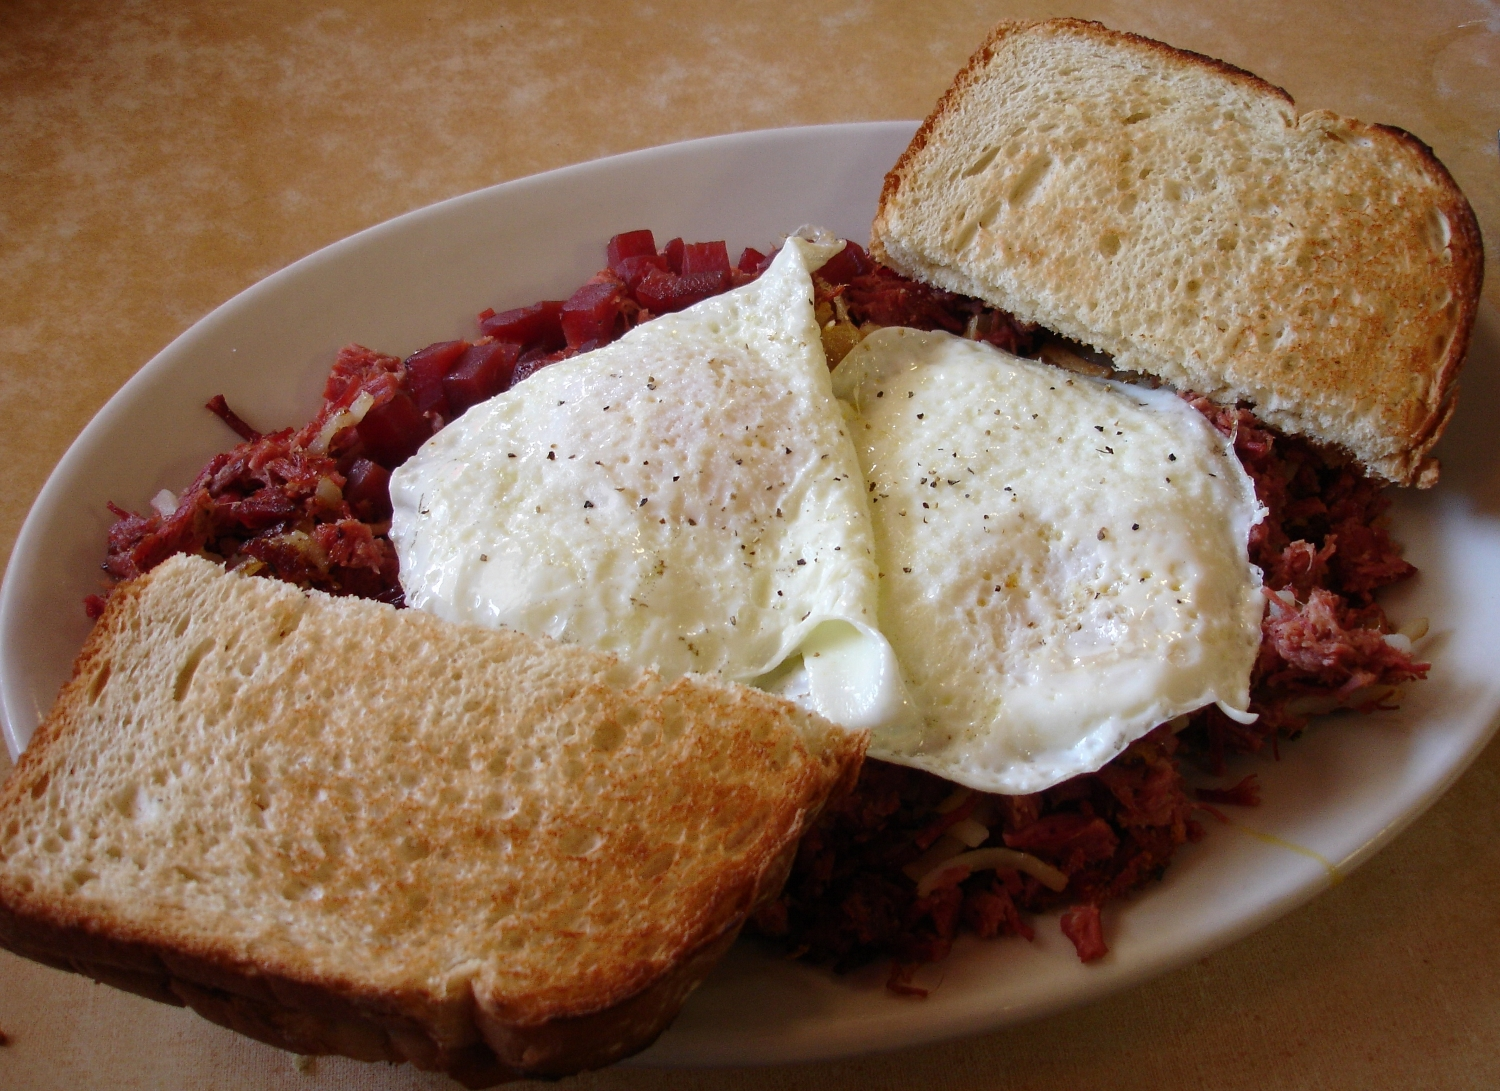 4 Aces corned beef hash is a diner classic.